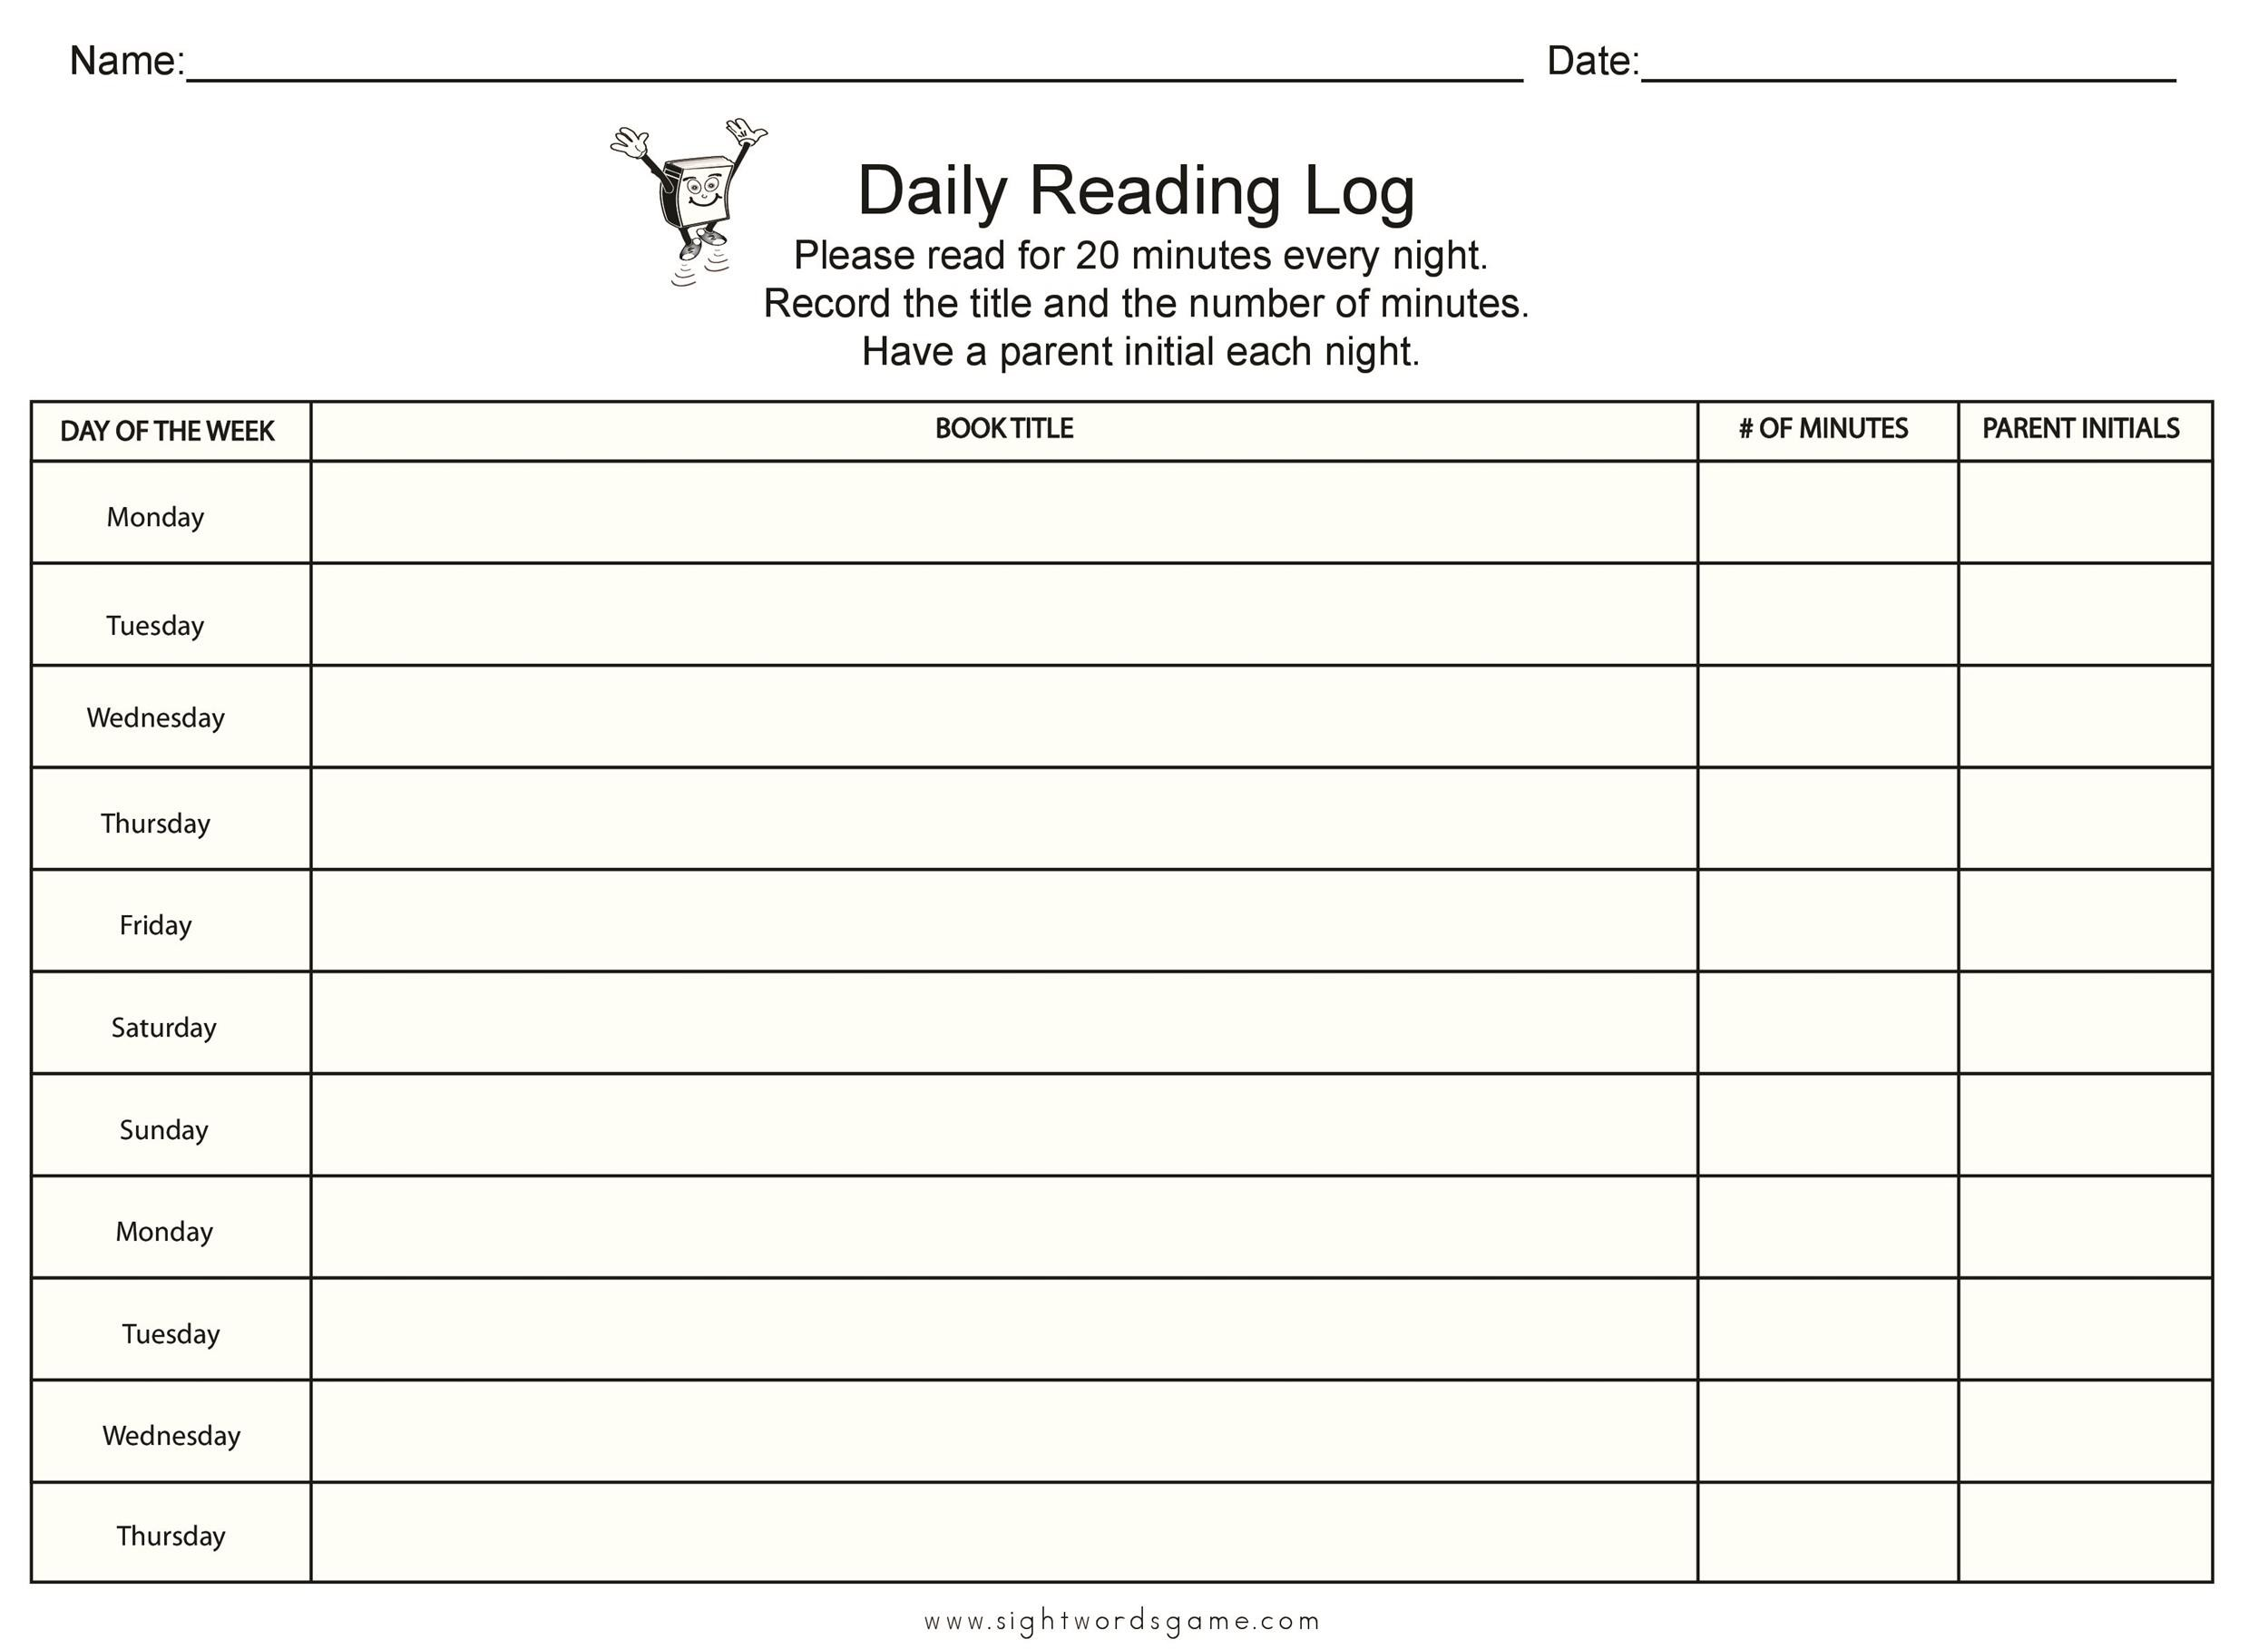 47 Printable Reading Log Templates for Kids, Middle School  Adults